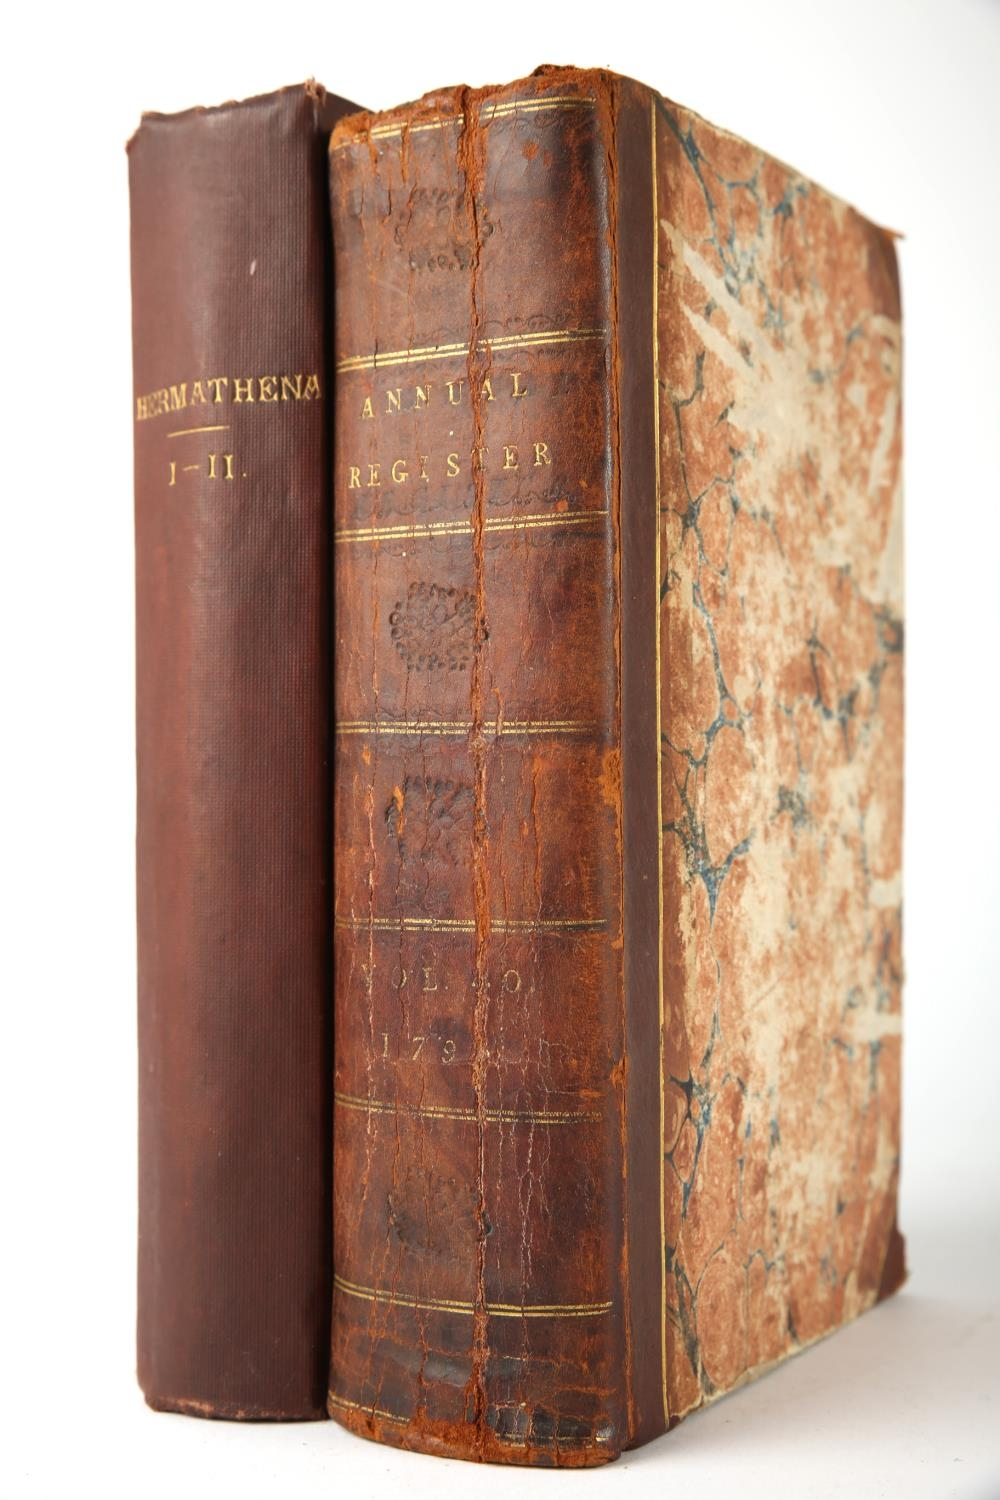 Hermathena 1874 and Annual Register 1798. Members of Trinity College Dublin. Hermathena, a series of